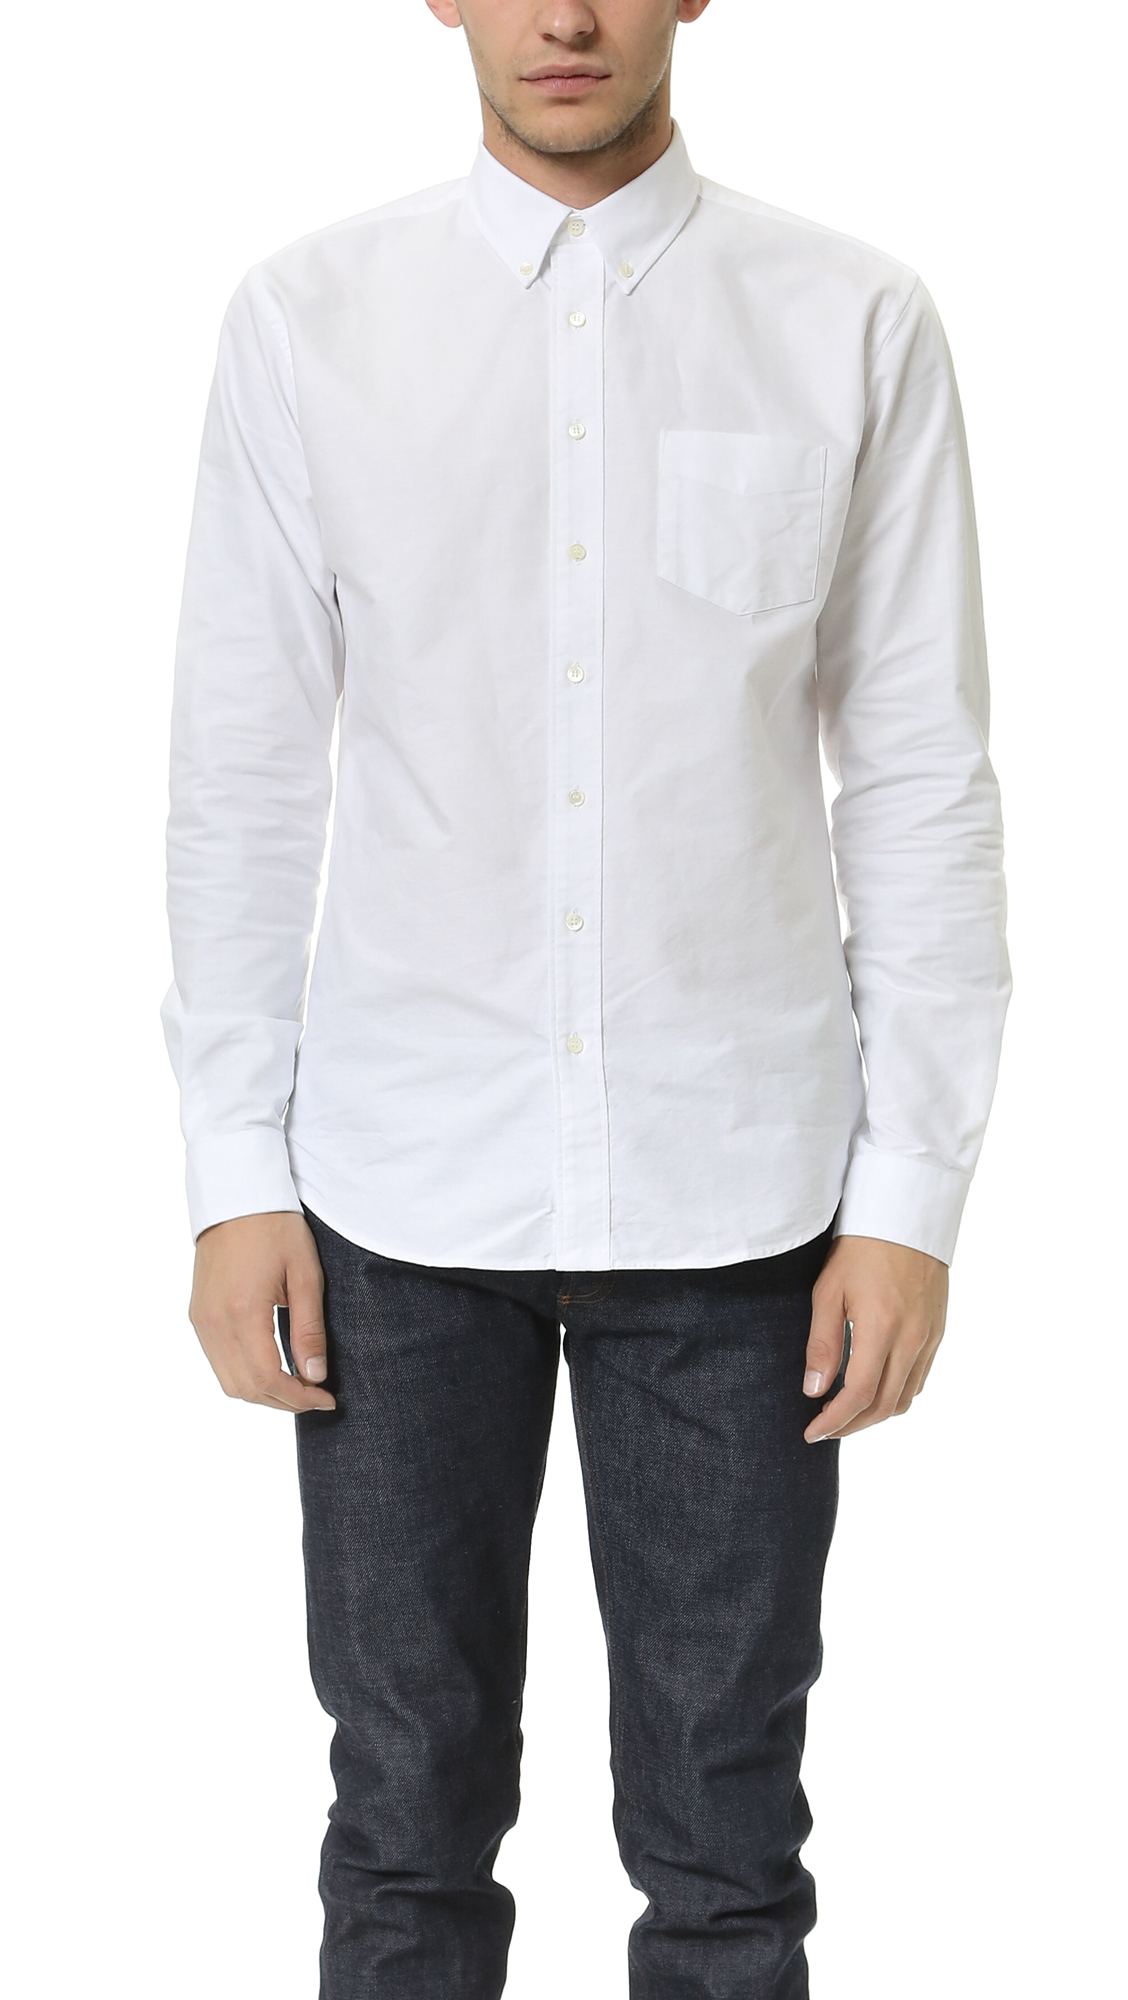 Schnayderman 39 S Oxford One Shirt In White For Men Lyst